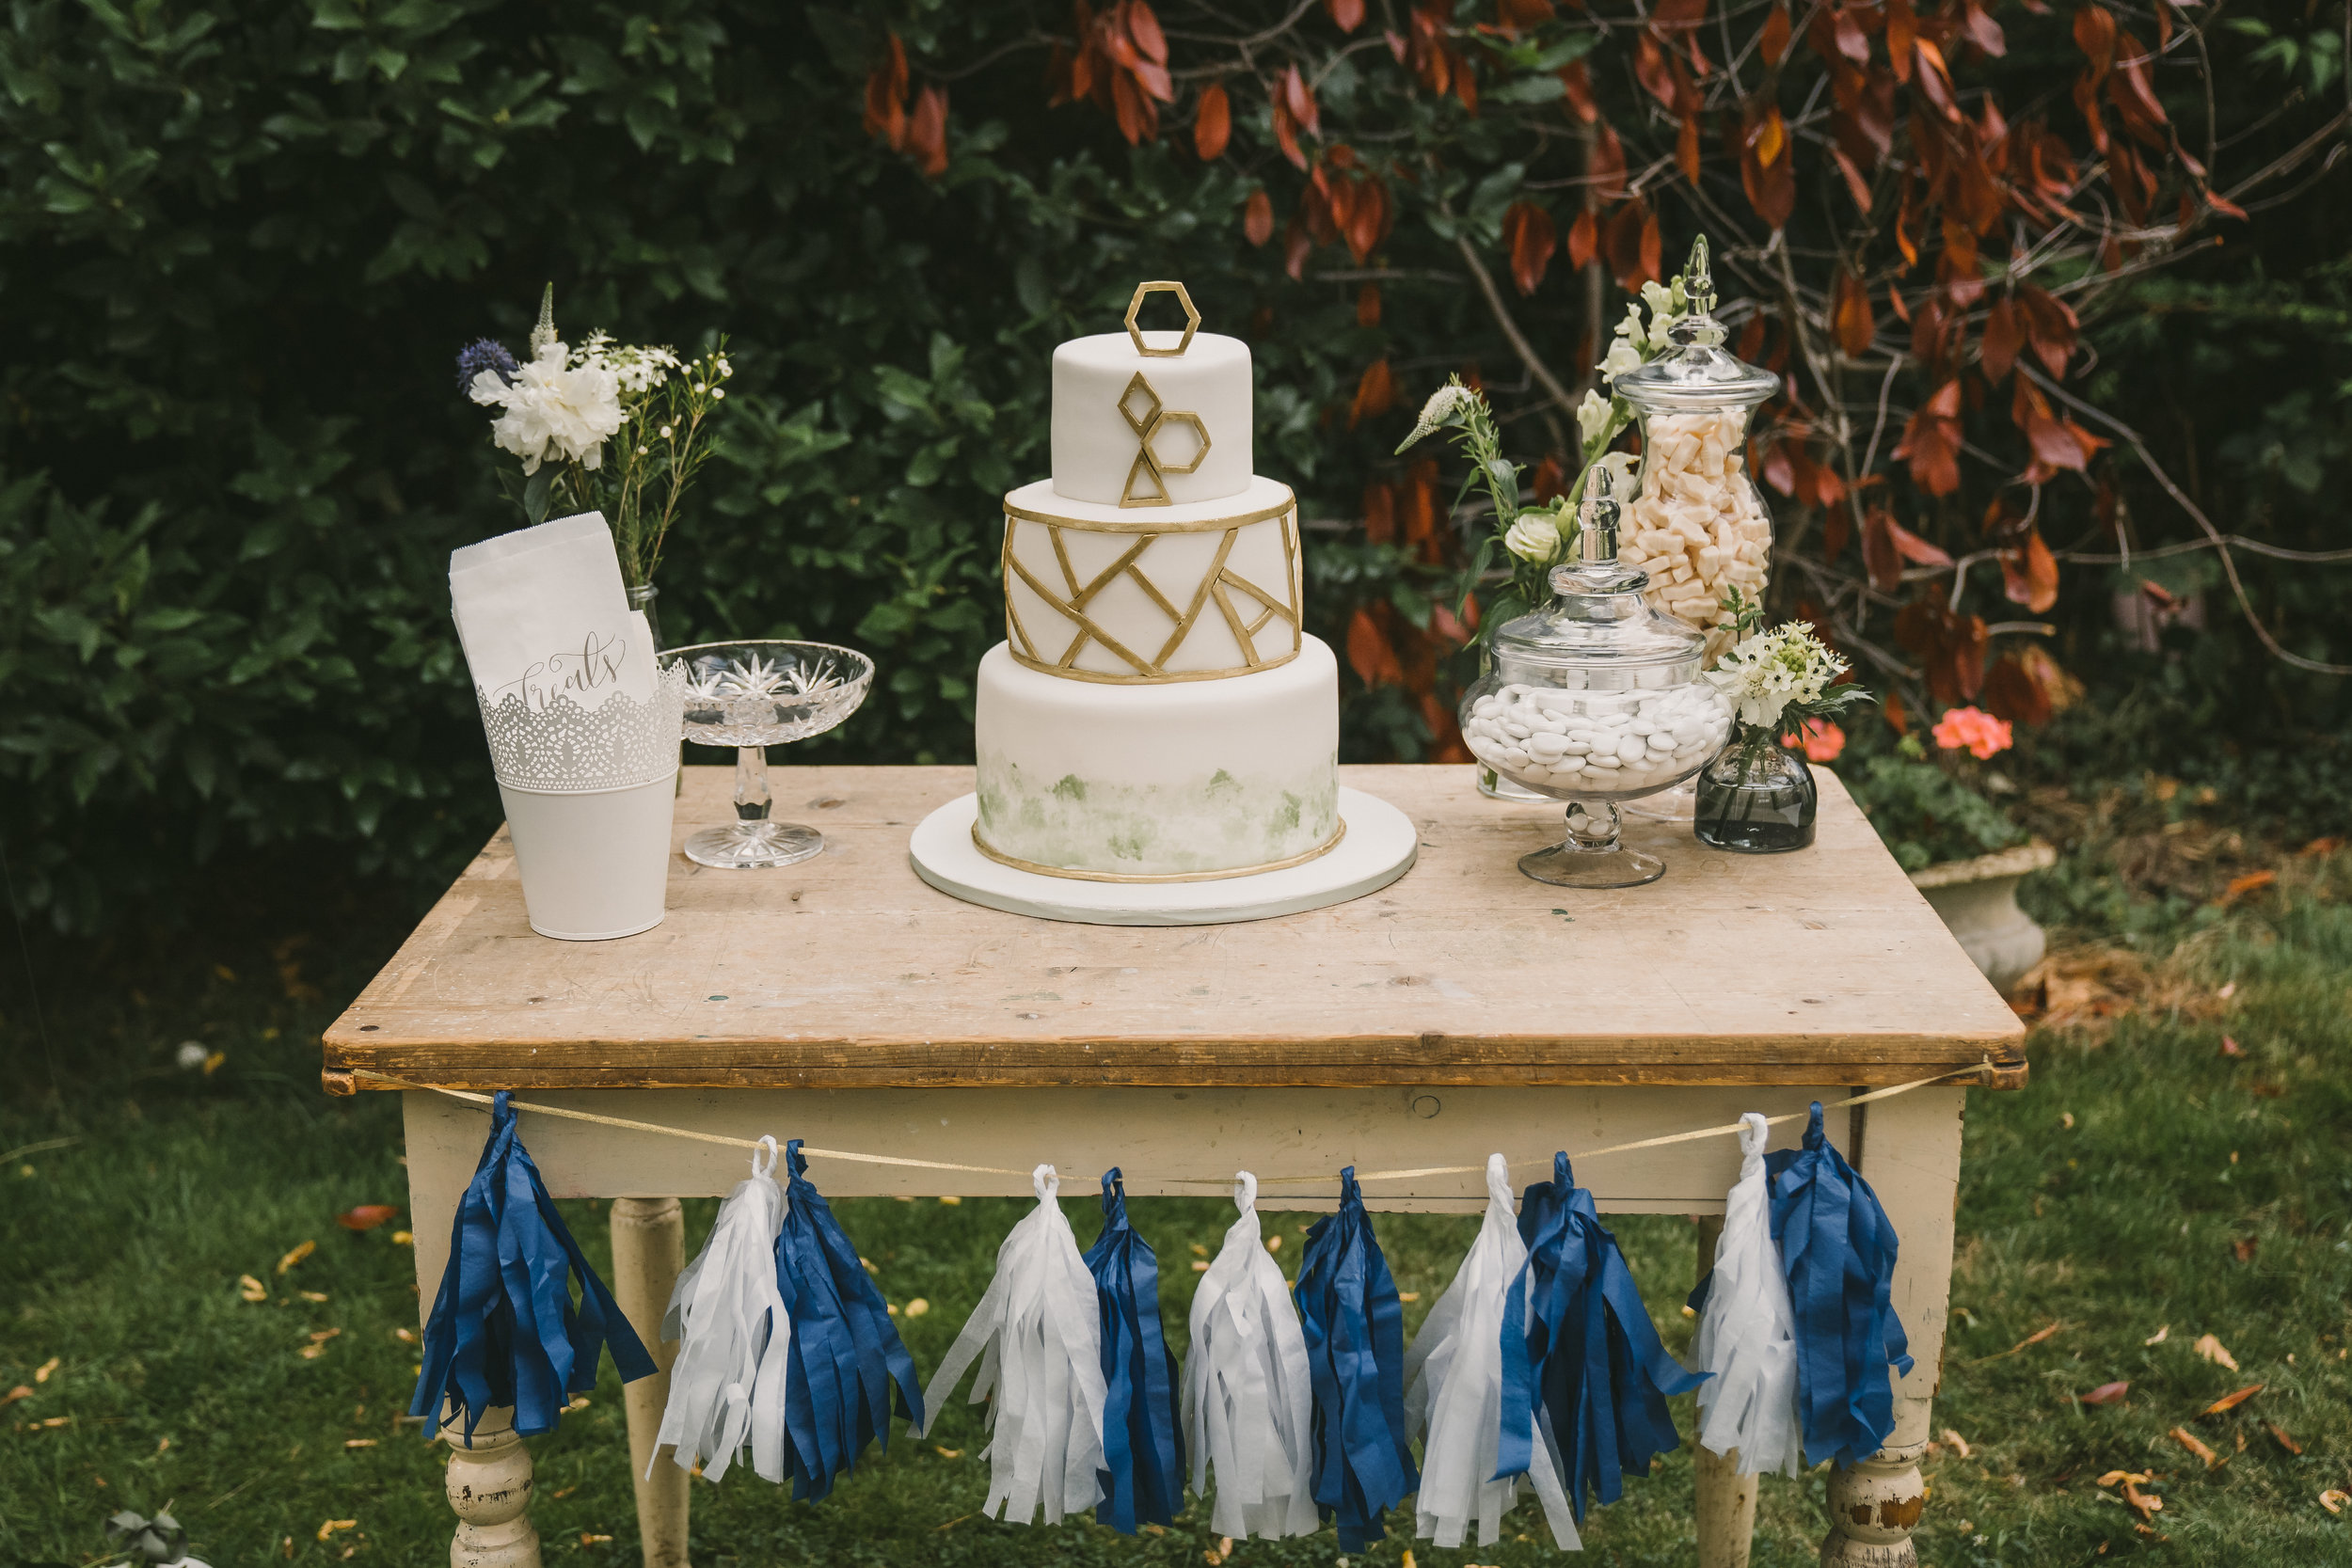 Vintage table for hire. One available £25. We can also create the tassel or ribbon garland